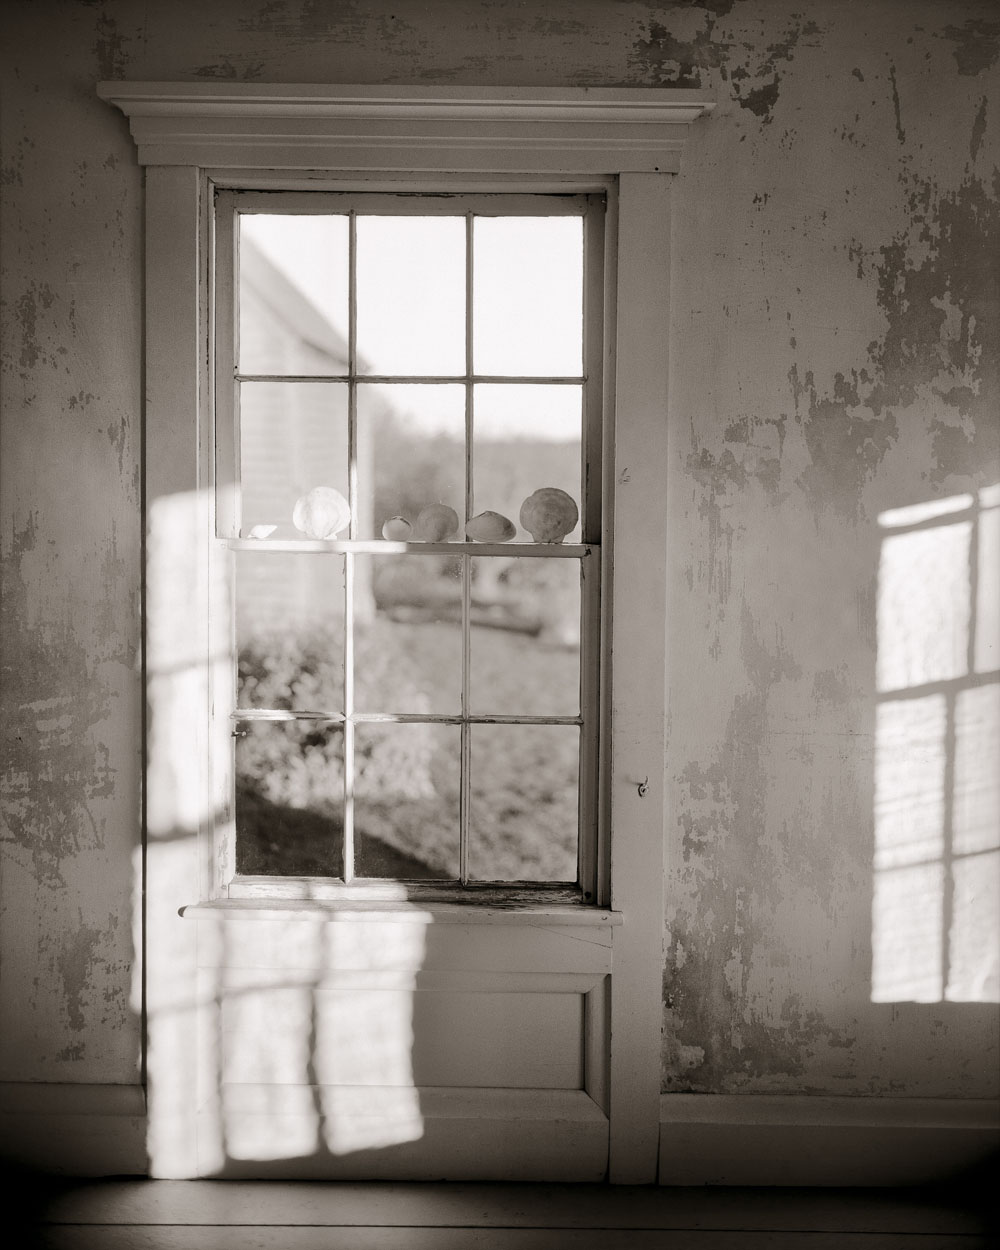 Linda Connor, Morning Light, 2006